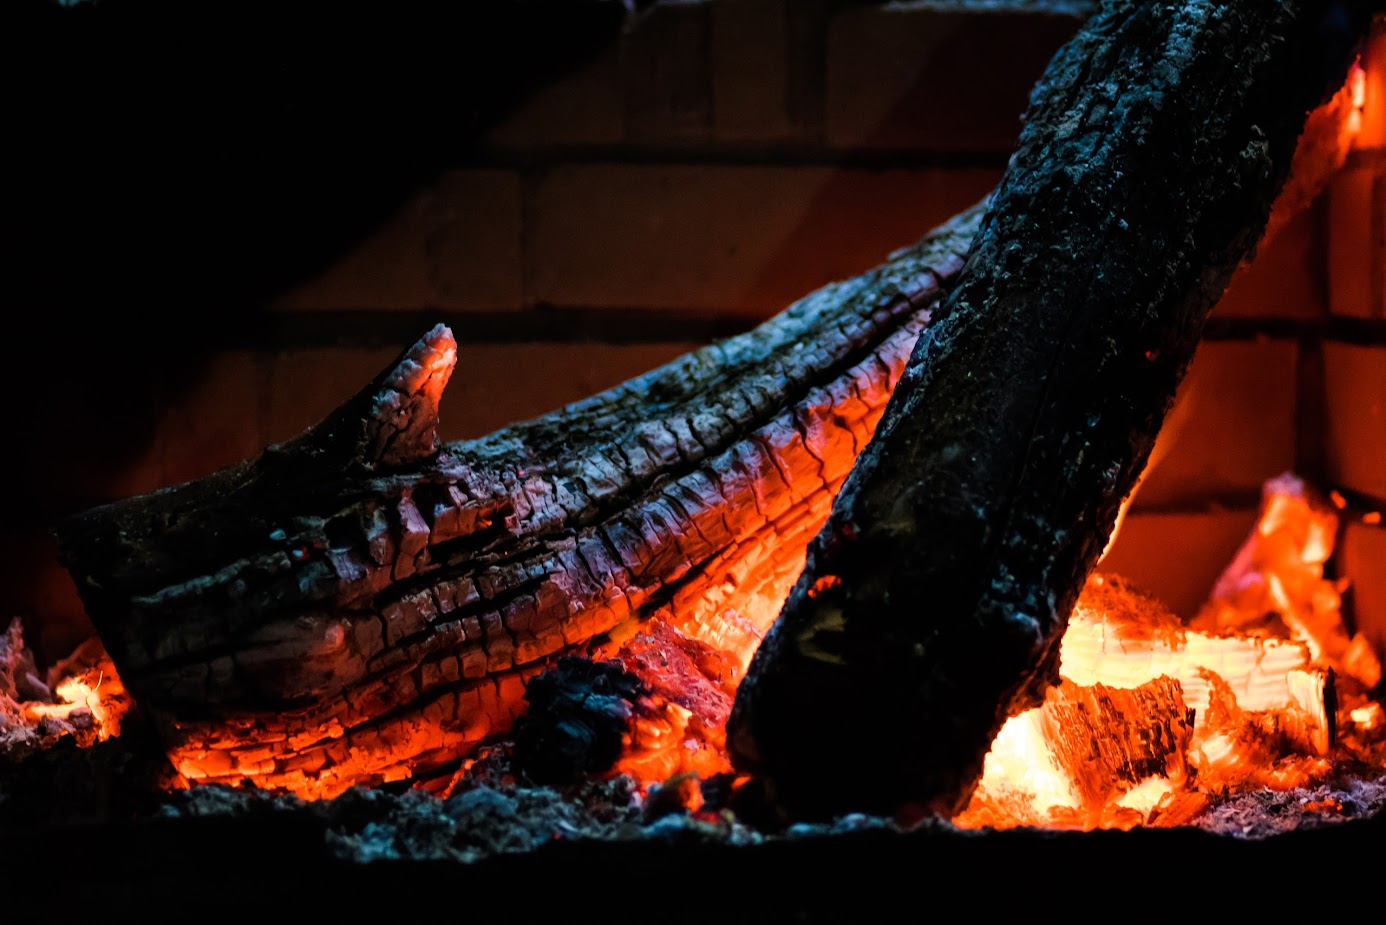 Anova Sous Vide Log fire